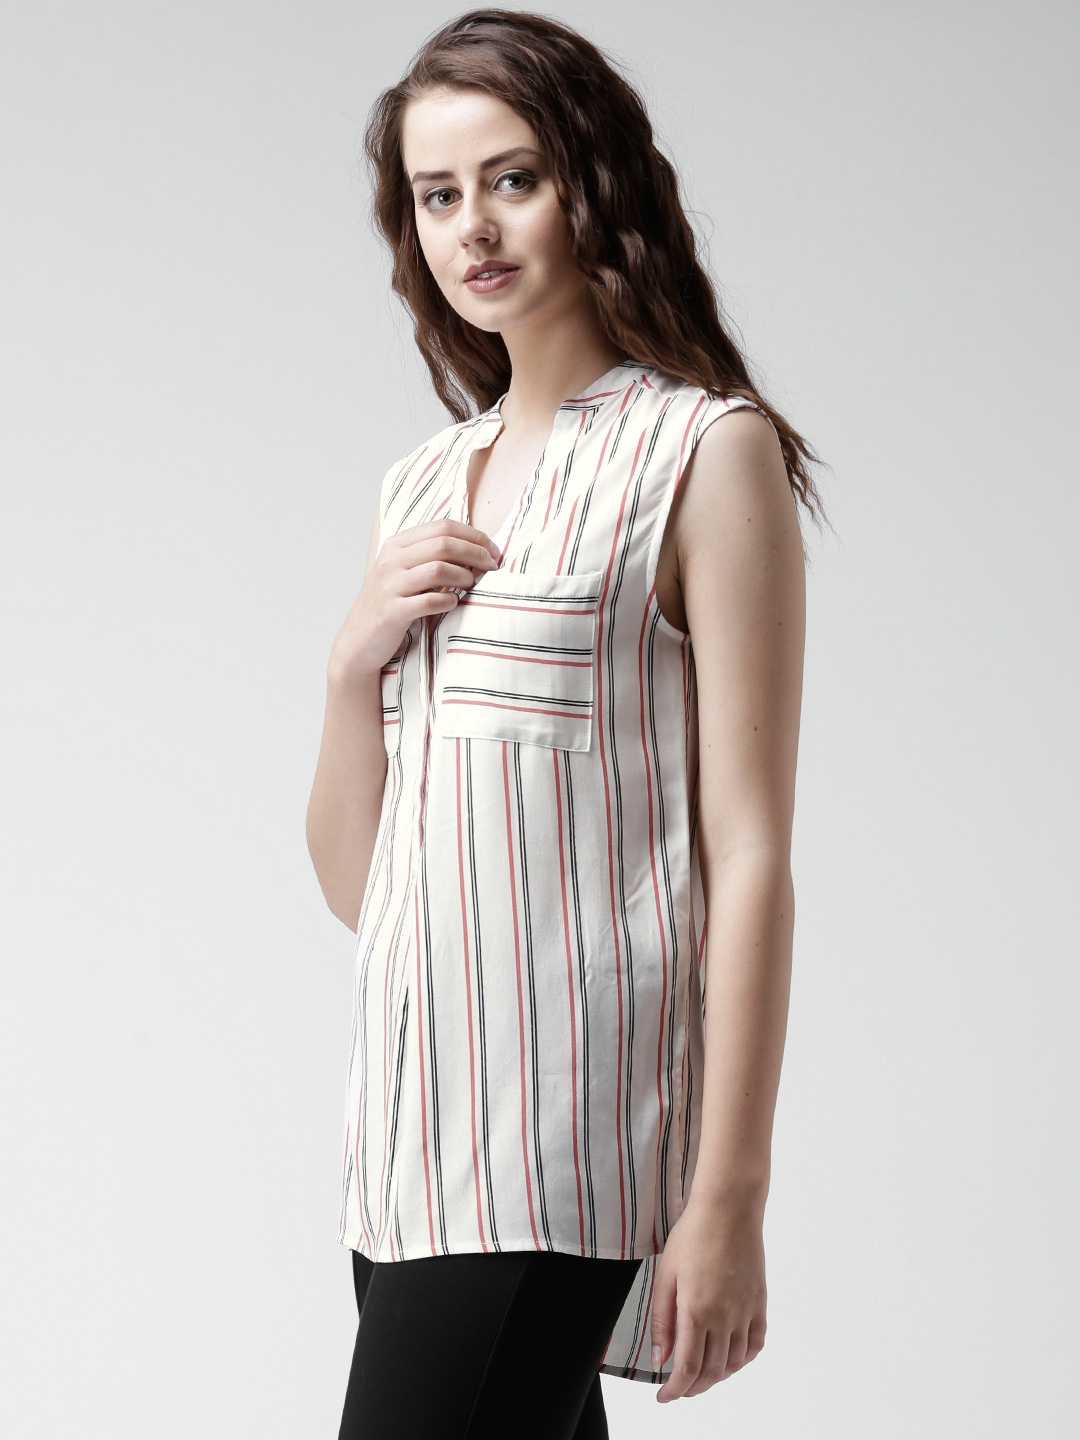 8256d7cc43 Buy New Look White Striped Shirt - Shirts for Women 1302164   Myntra